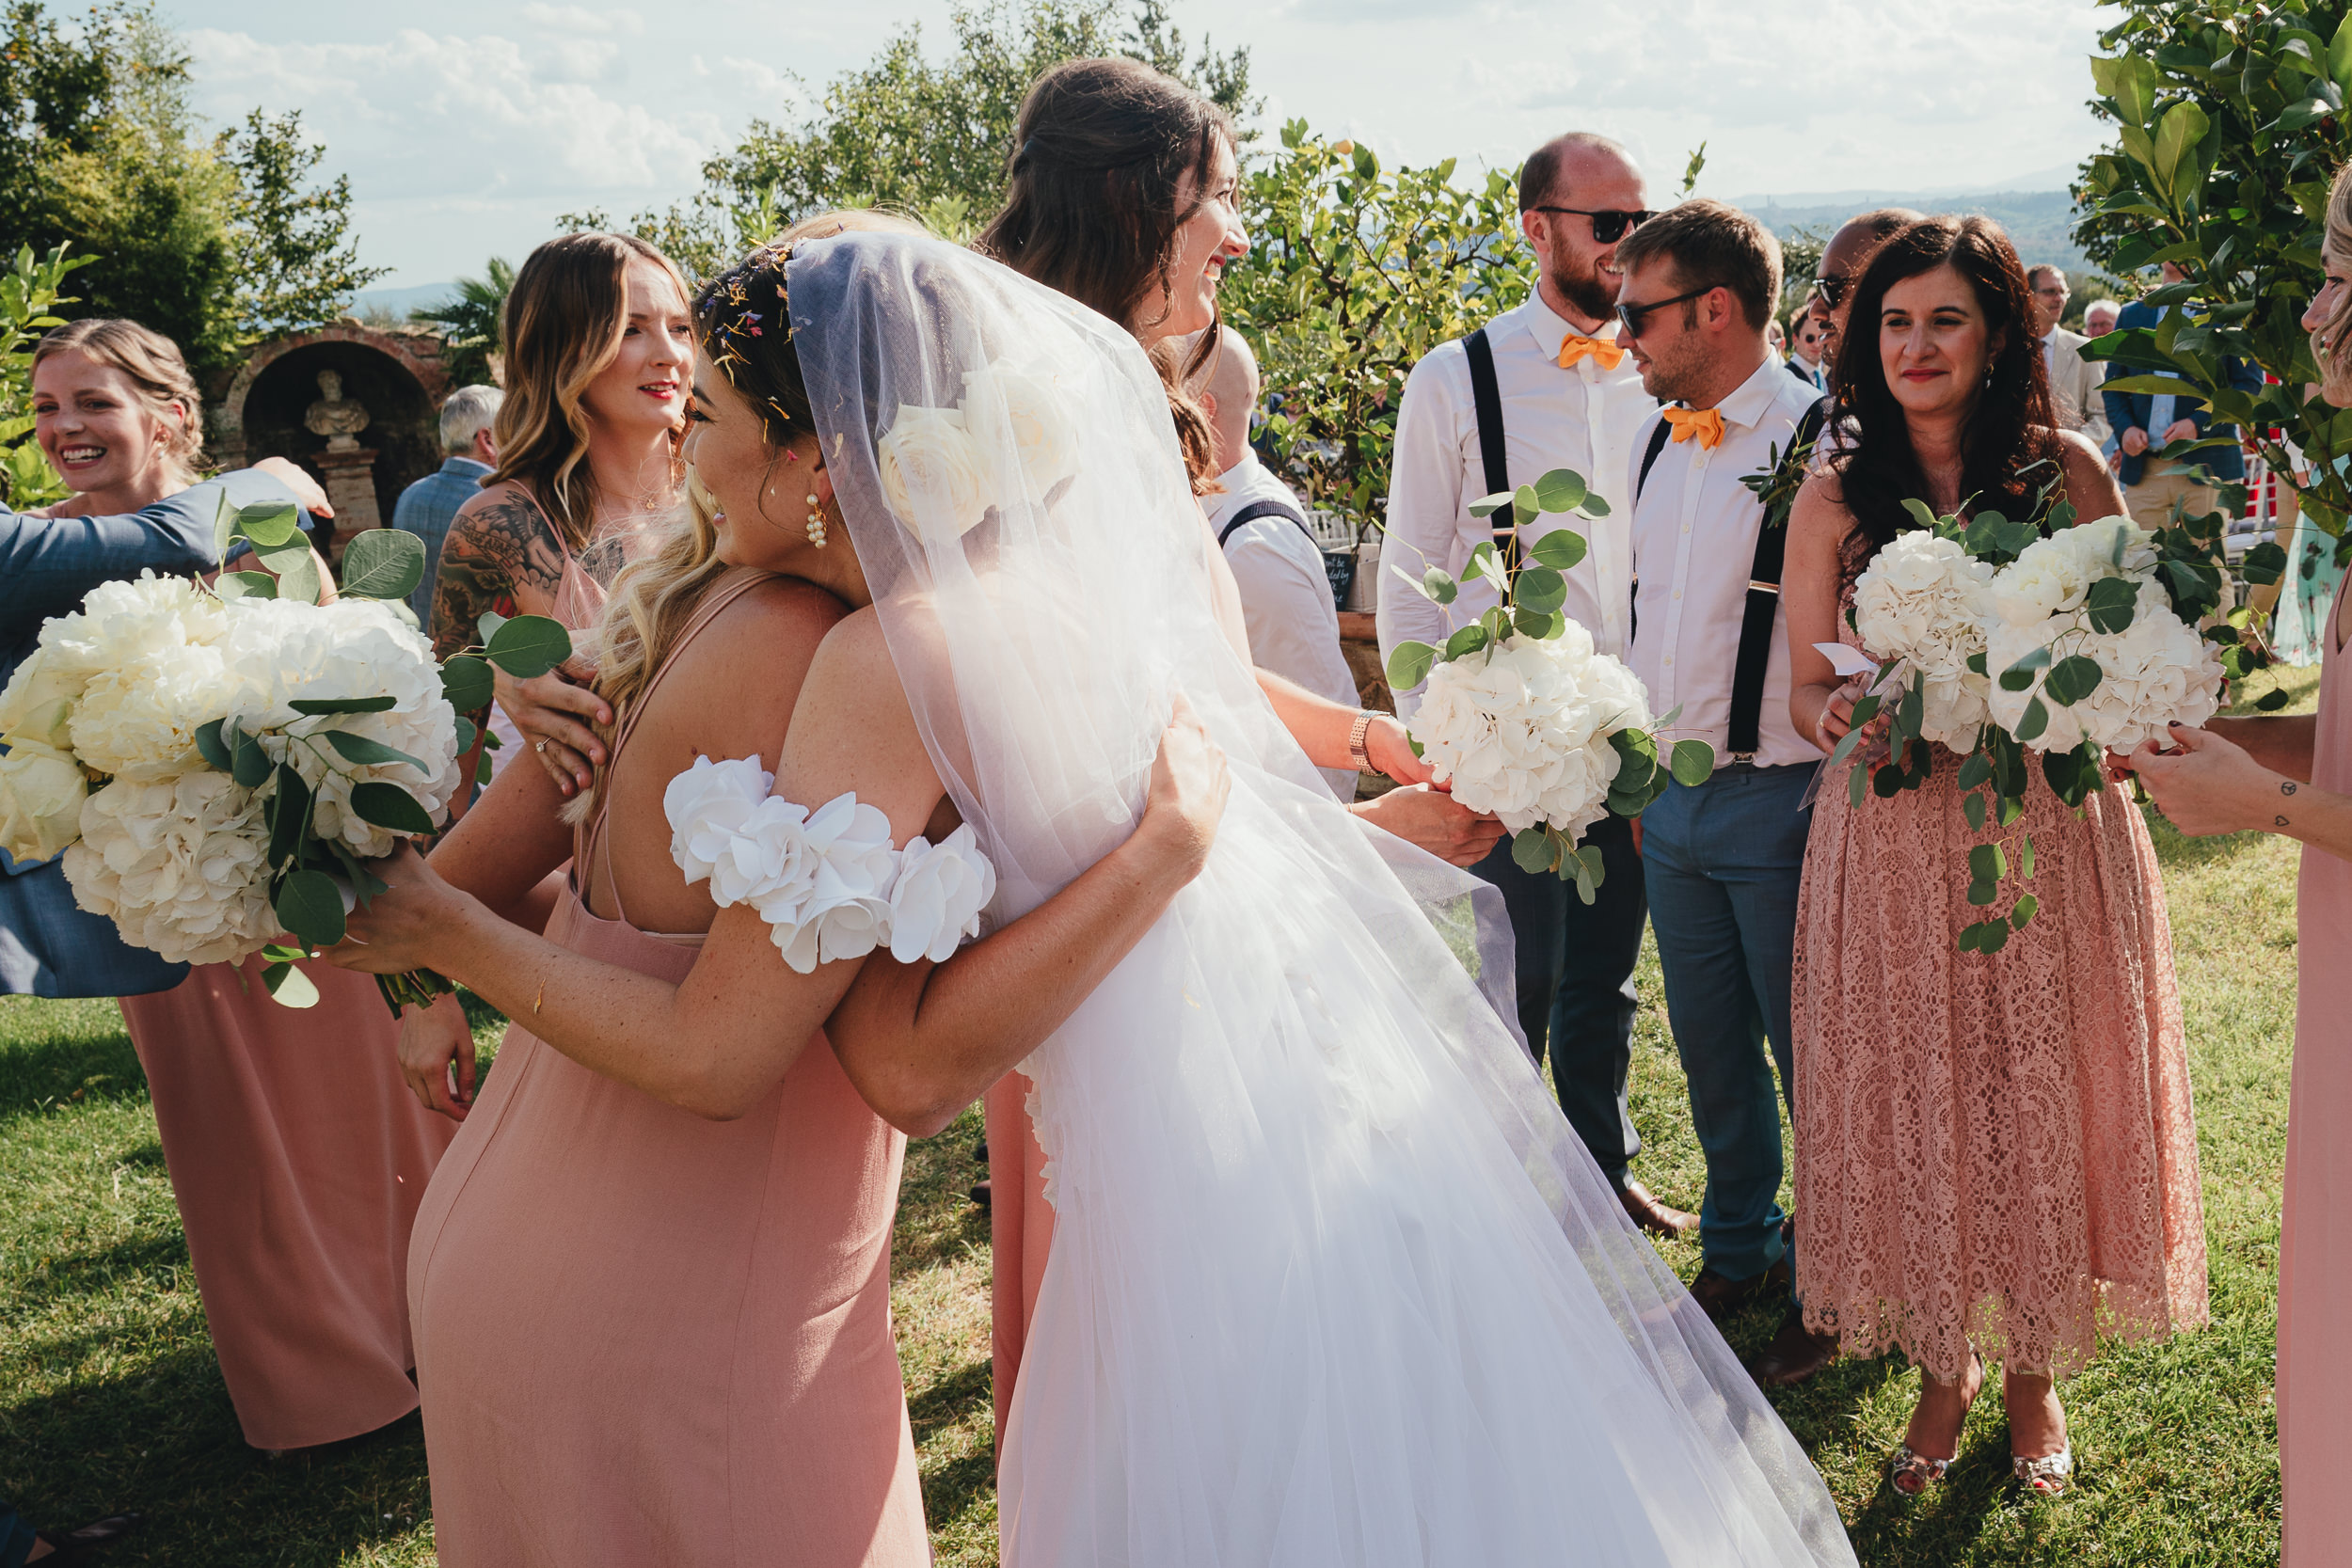 The Bride hugs her Bridesmaids in the garden at Villa Catignano